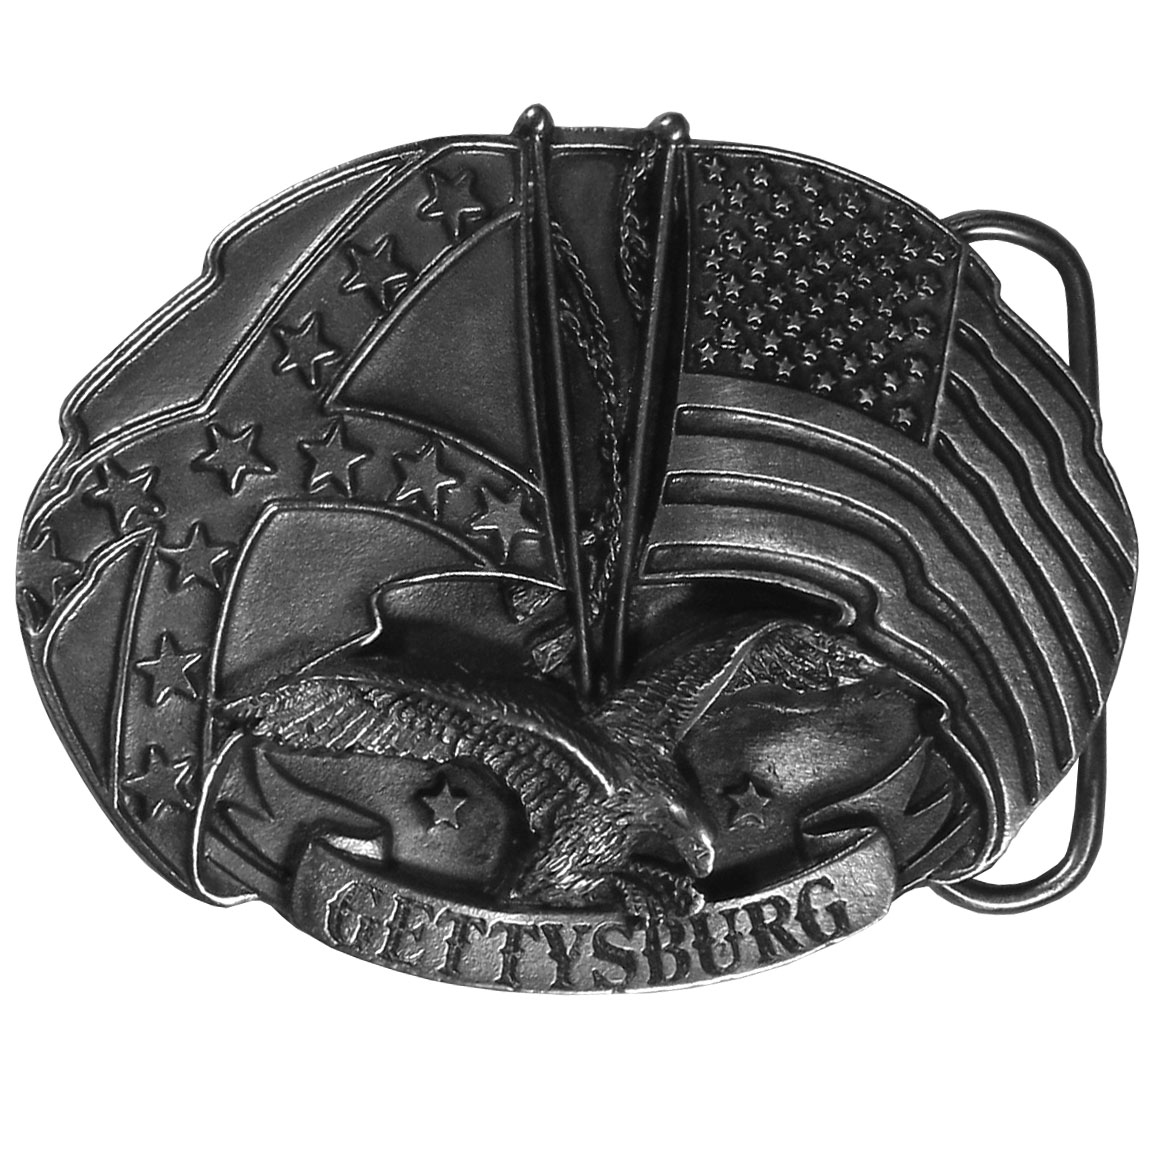 "Gettysburg Antiqued Belt Buckle - ""This buckle honors the Battle of Gettysburg.  ""Gettysburg"" is written in bold across the bottom with an American flag and a Confederate flag, as well as an eagle, above.  On the back are the words, """"Gettysburg is the site of General Mead's defeat of General Lee on July 1-3, 1863, is also where President Lincoln delivered his stirring address on November 19th of that same year.""""  This exquisitely carved buckle is made of fully cast metal with a standard bale that fits up to 2"""" belts.  Siskiyou's unique buckle designs often become collectors items."""